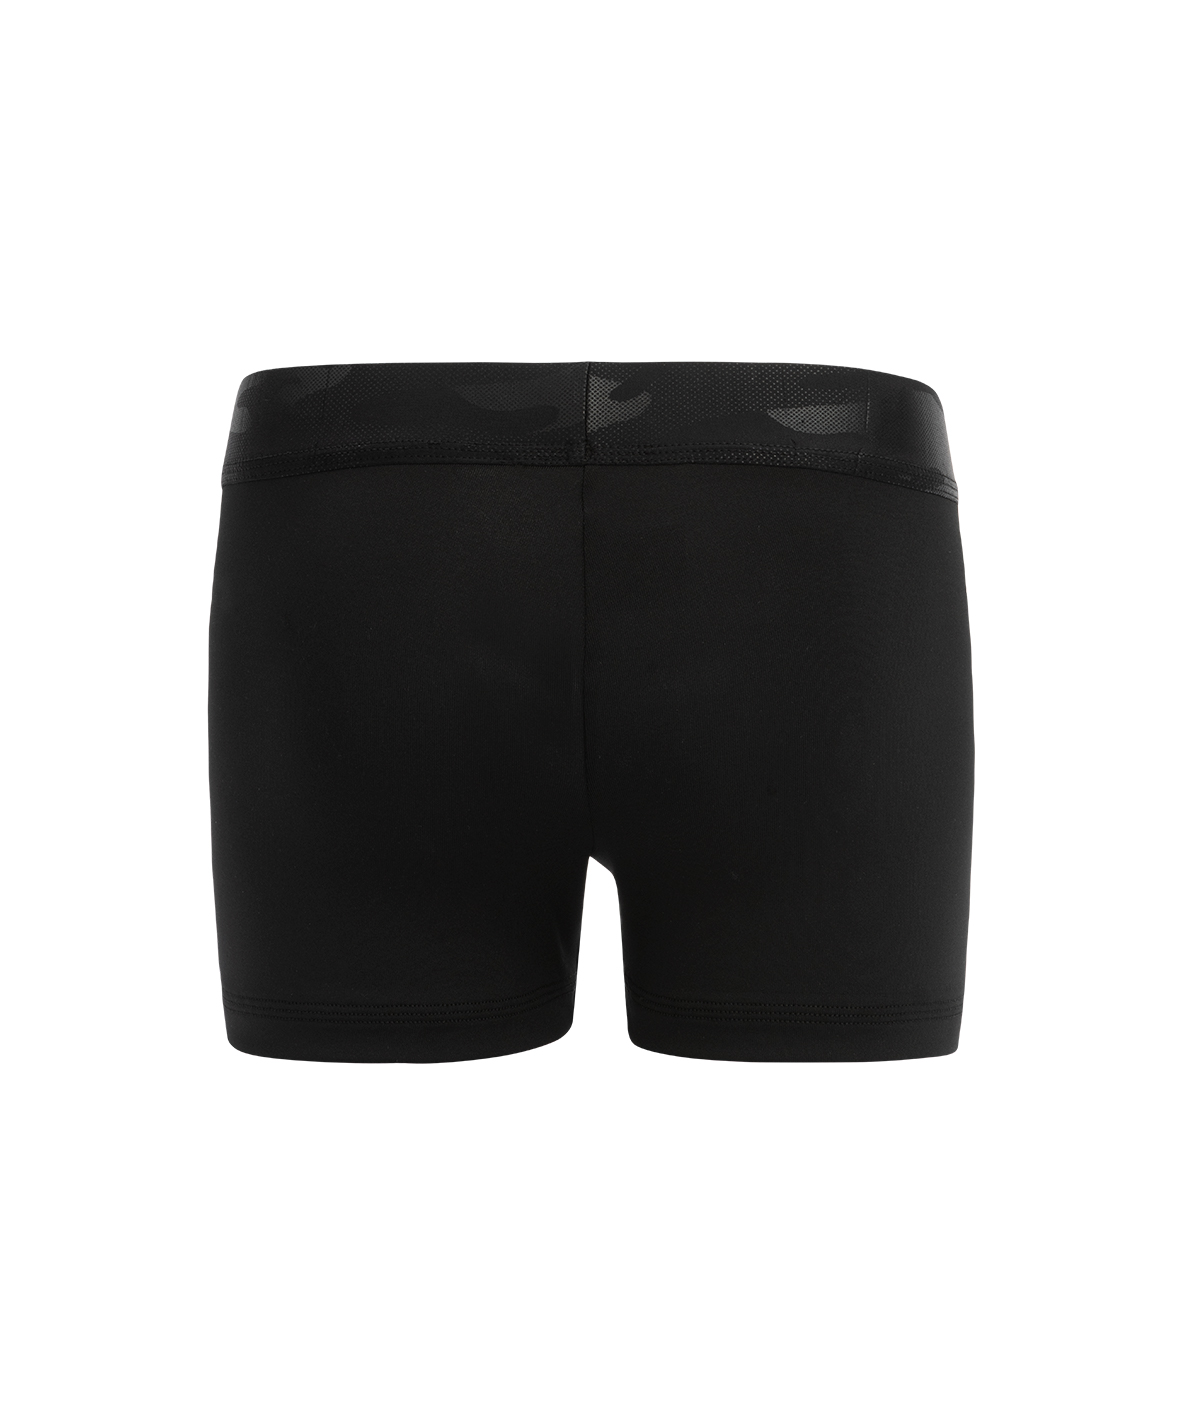 GK All Star Camou Standard Short